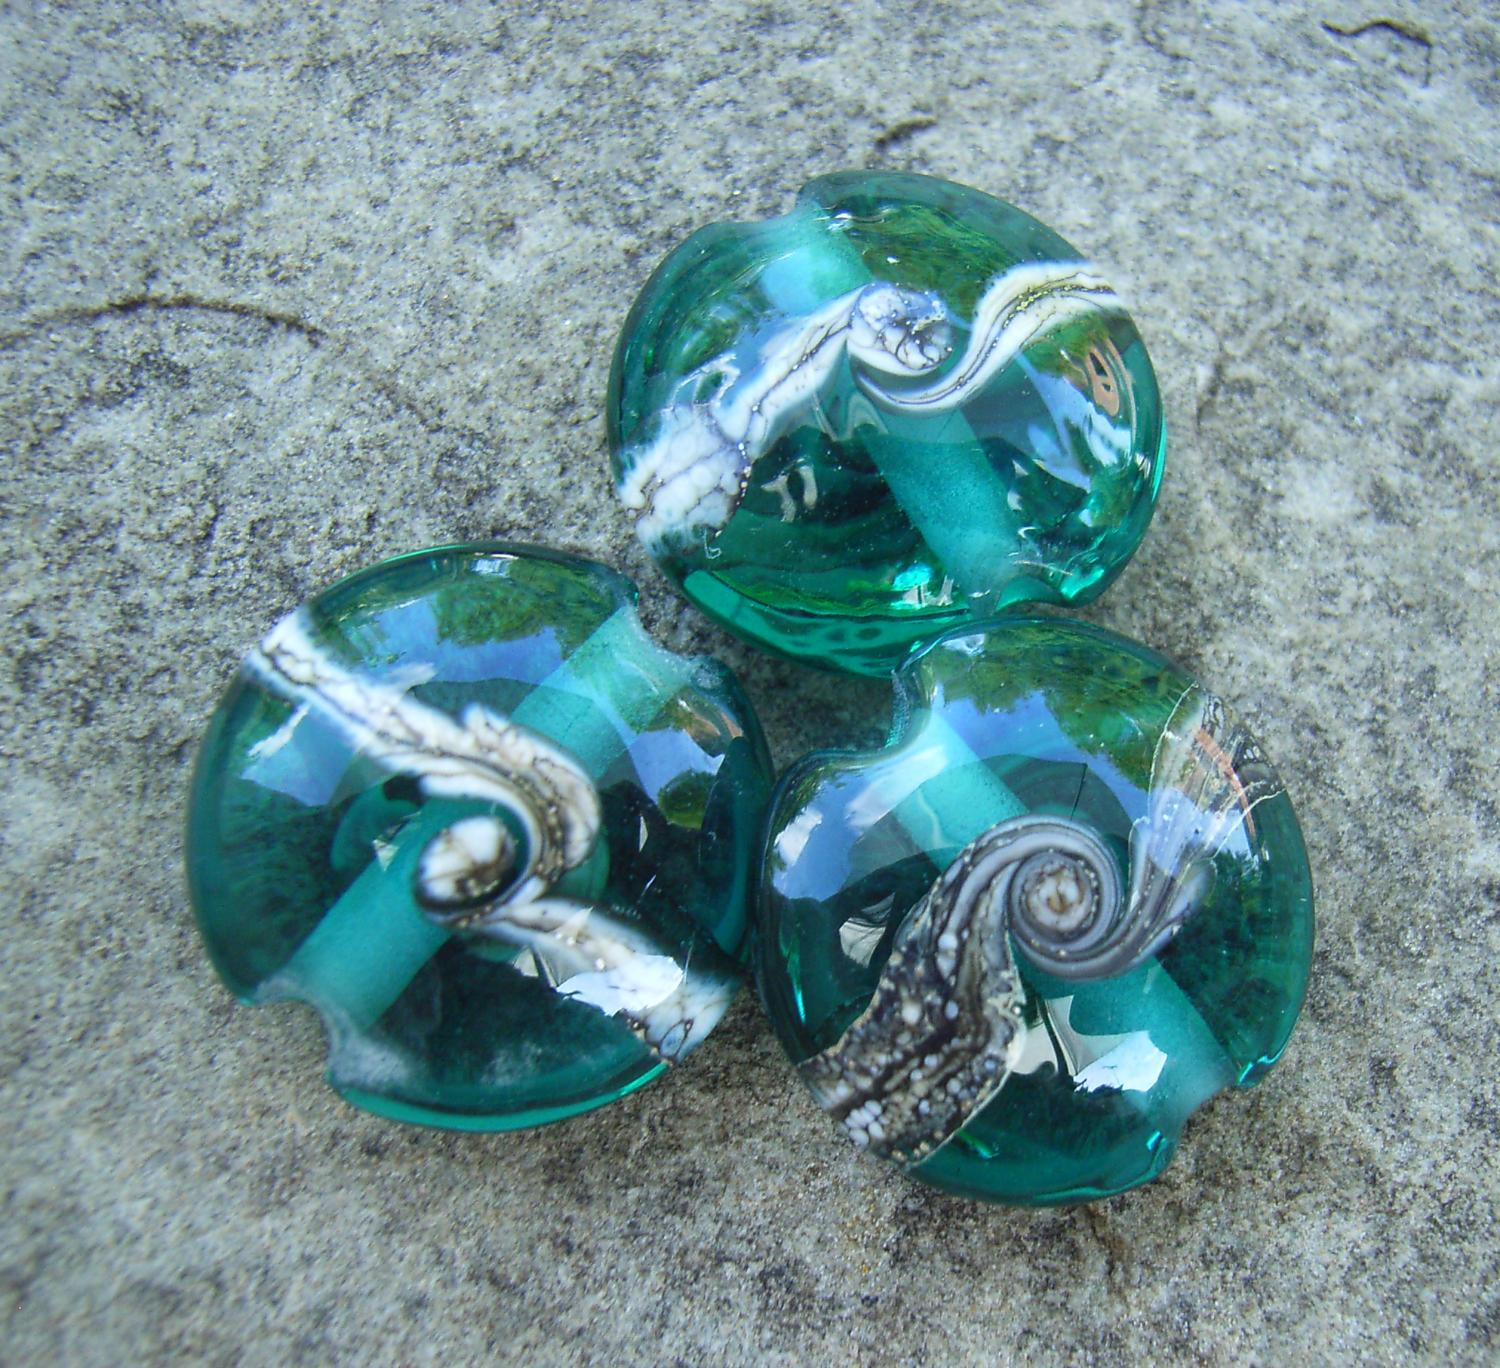 Silvered Ivory Swirl Teal 18mm Lentil Handmade Artisan Glass Lampwork Beads - By the Bead, (Made to Order)